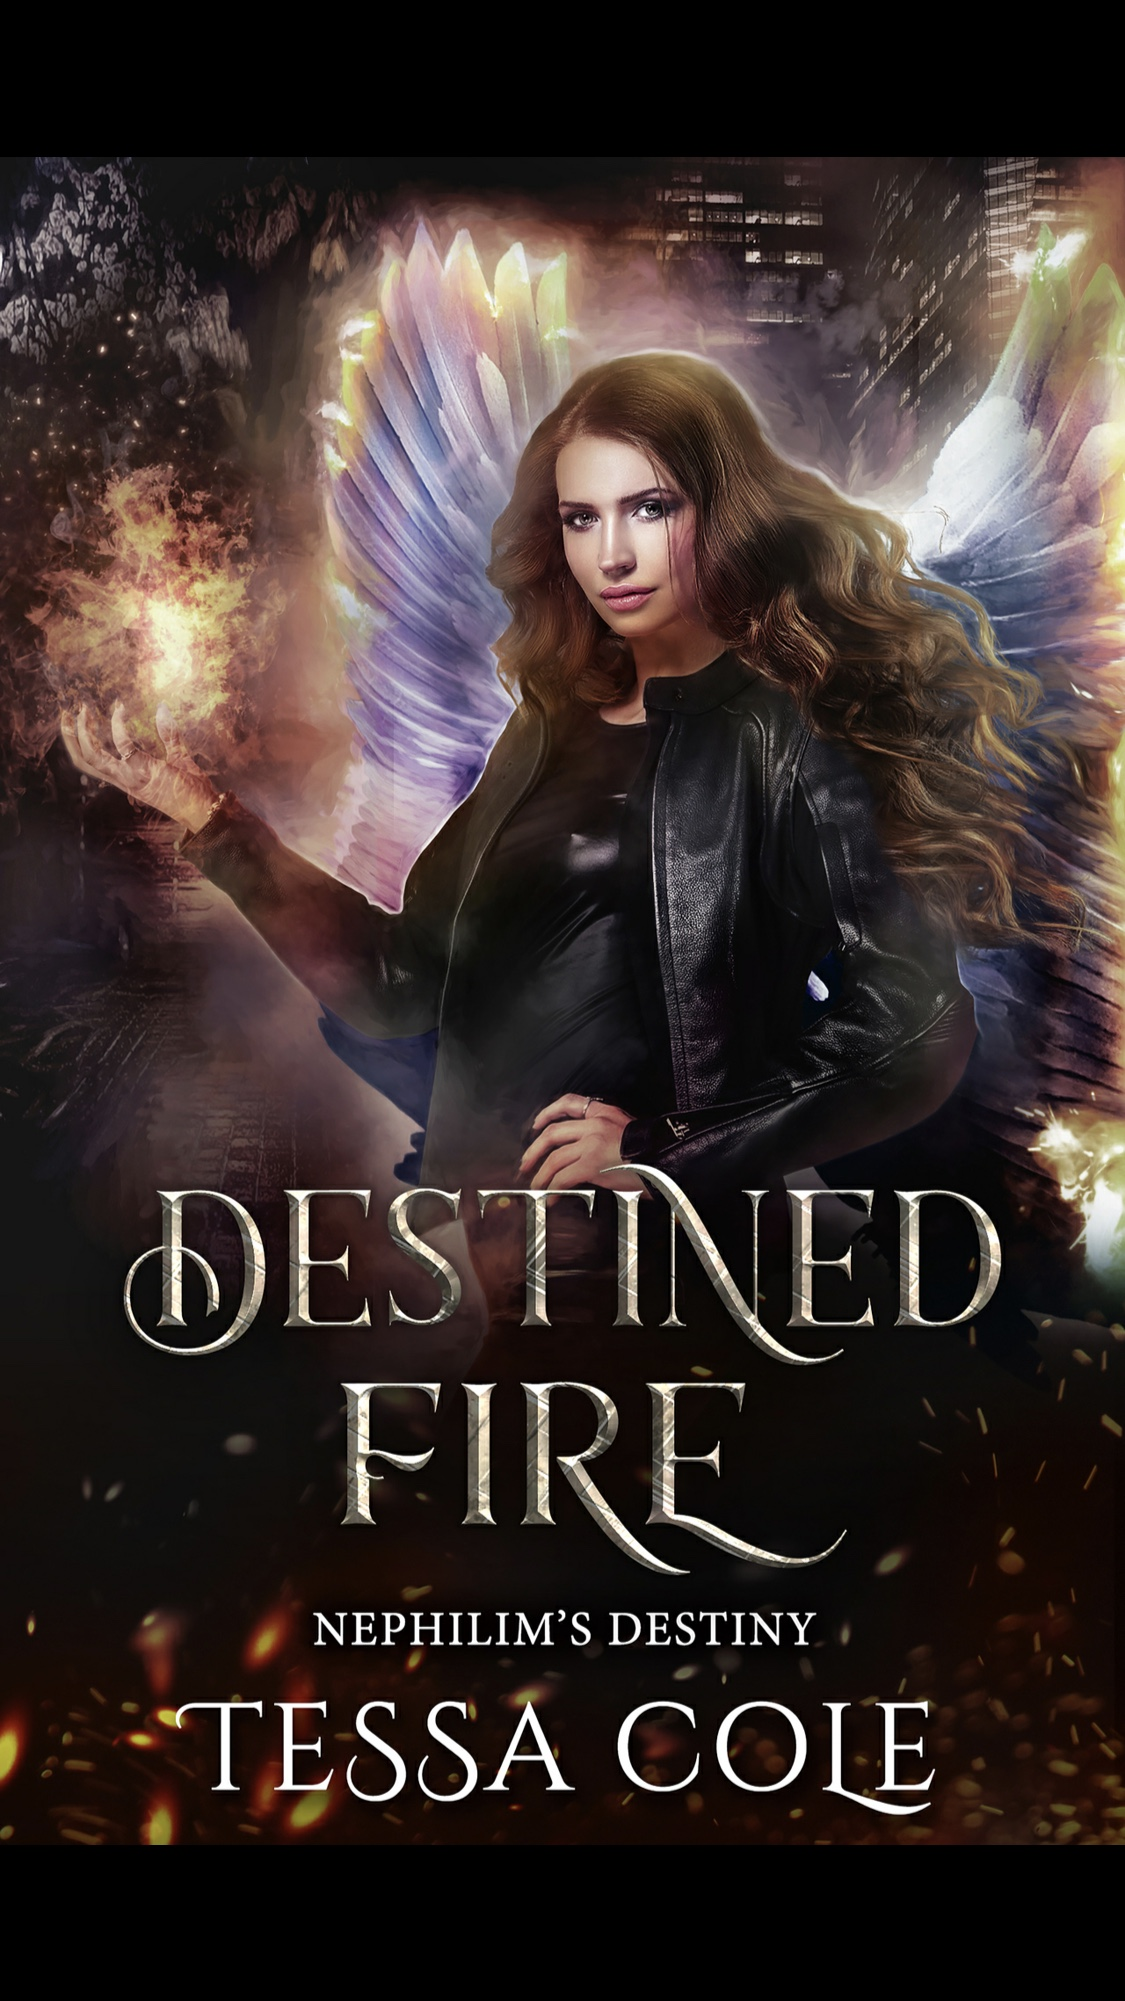 Destined Fire by Tessa Cole – A Book Review